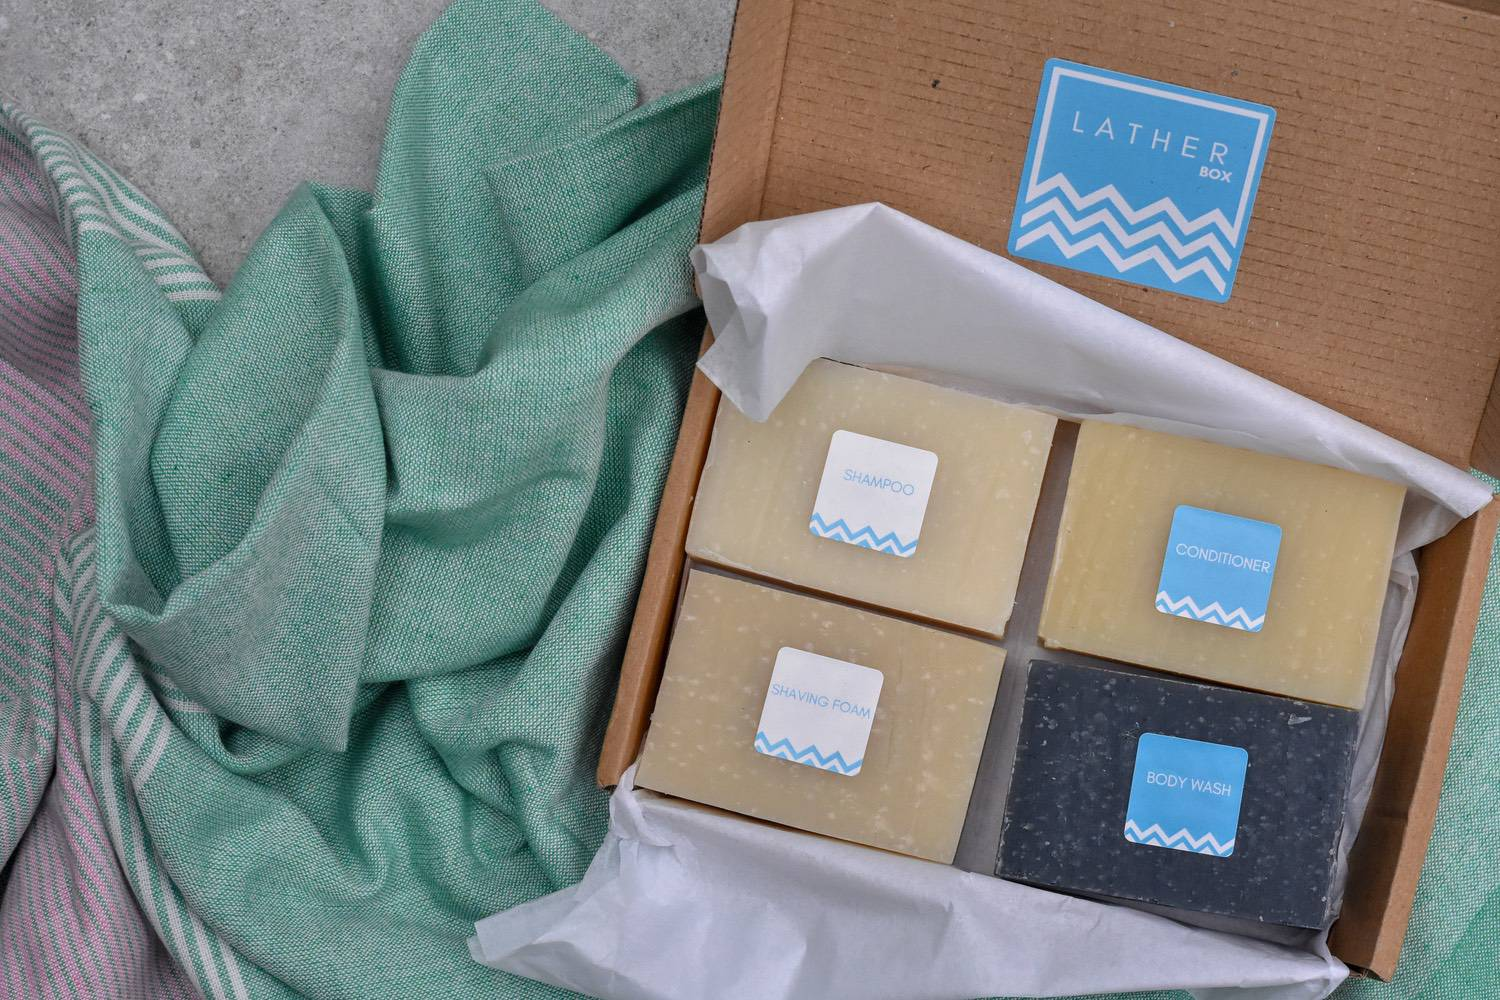 LATHER BOX - This has to be the easiest way to cut back on bathroom plastic.Lather Box is a monthly delivery of plastic-free bars - shampoo, conditioner, shaving foam and body wash.A subscription costs £19 a month, which seems pretty reasonable for a cleans-everything-kit. It's definitely a no-frills solution though. Hard working, all-natural, basic ingredients & no packaging. Also, nothing is scented - which may suit some, but put others off. But, for a low-maintenance bathroom routine and even lower-maintenance shopping, this is a damn fine (plastic-free) way of doing it.